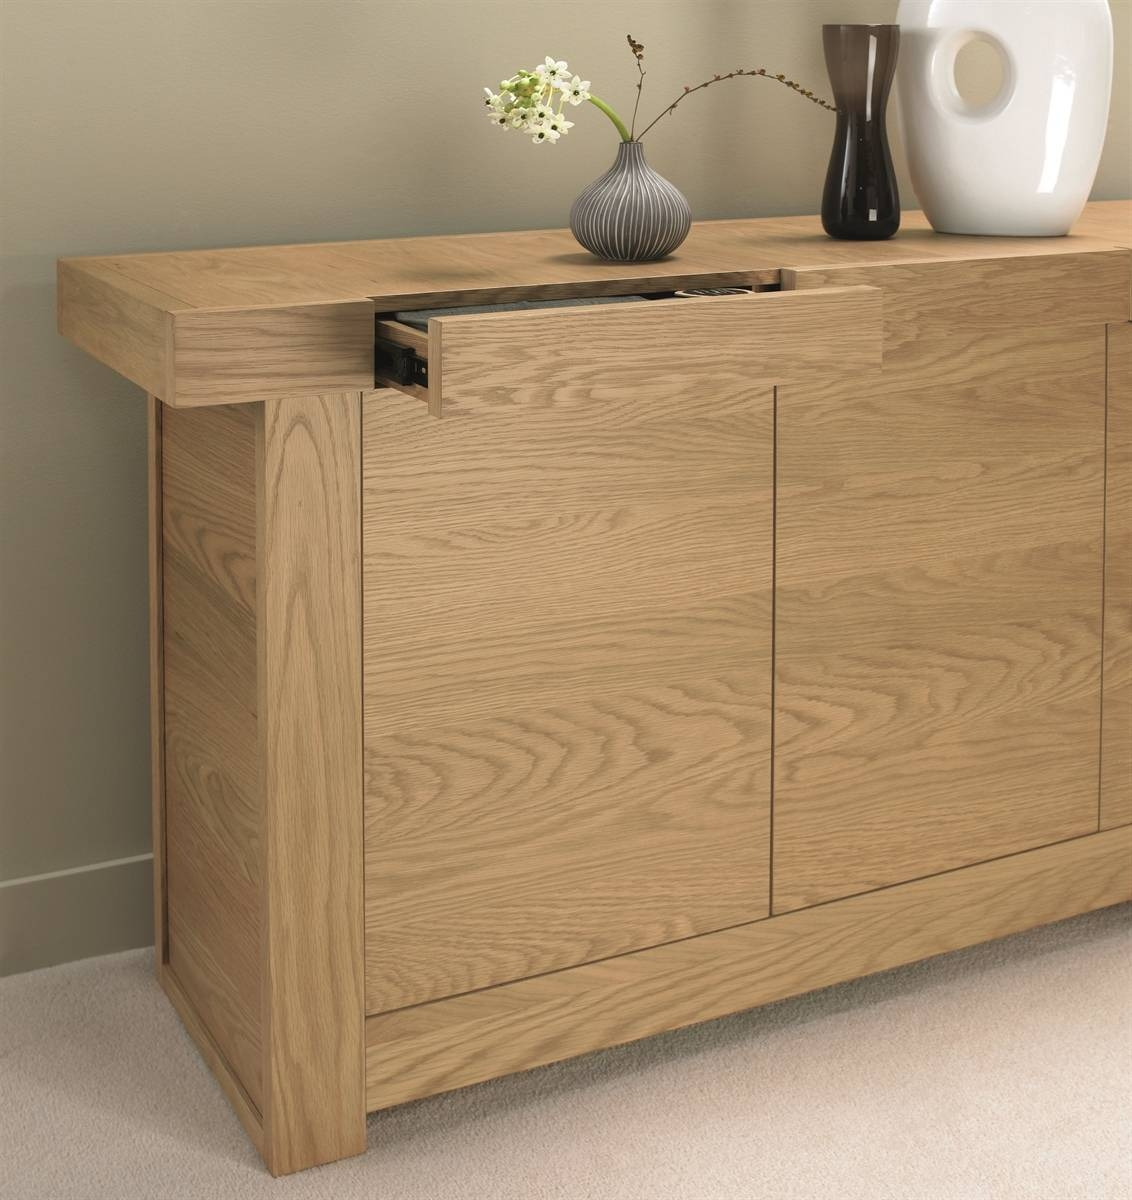 Dining Room Furniture / Furniture Store In Leicester | World Of with Narrow Oak Sideboards (Image 7 of 30)